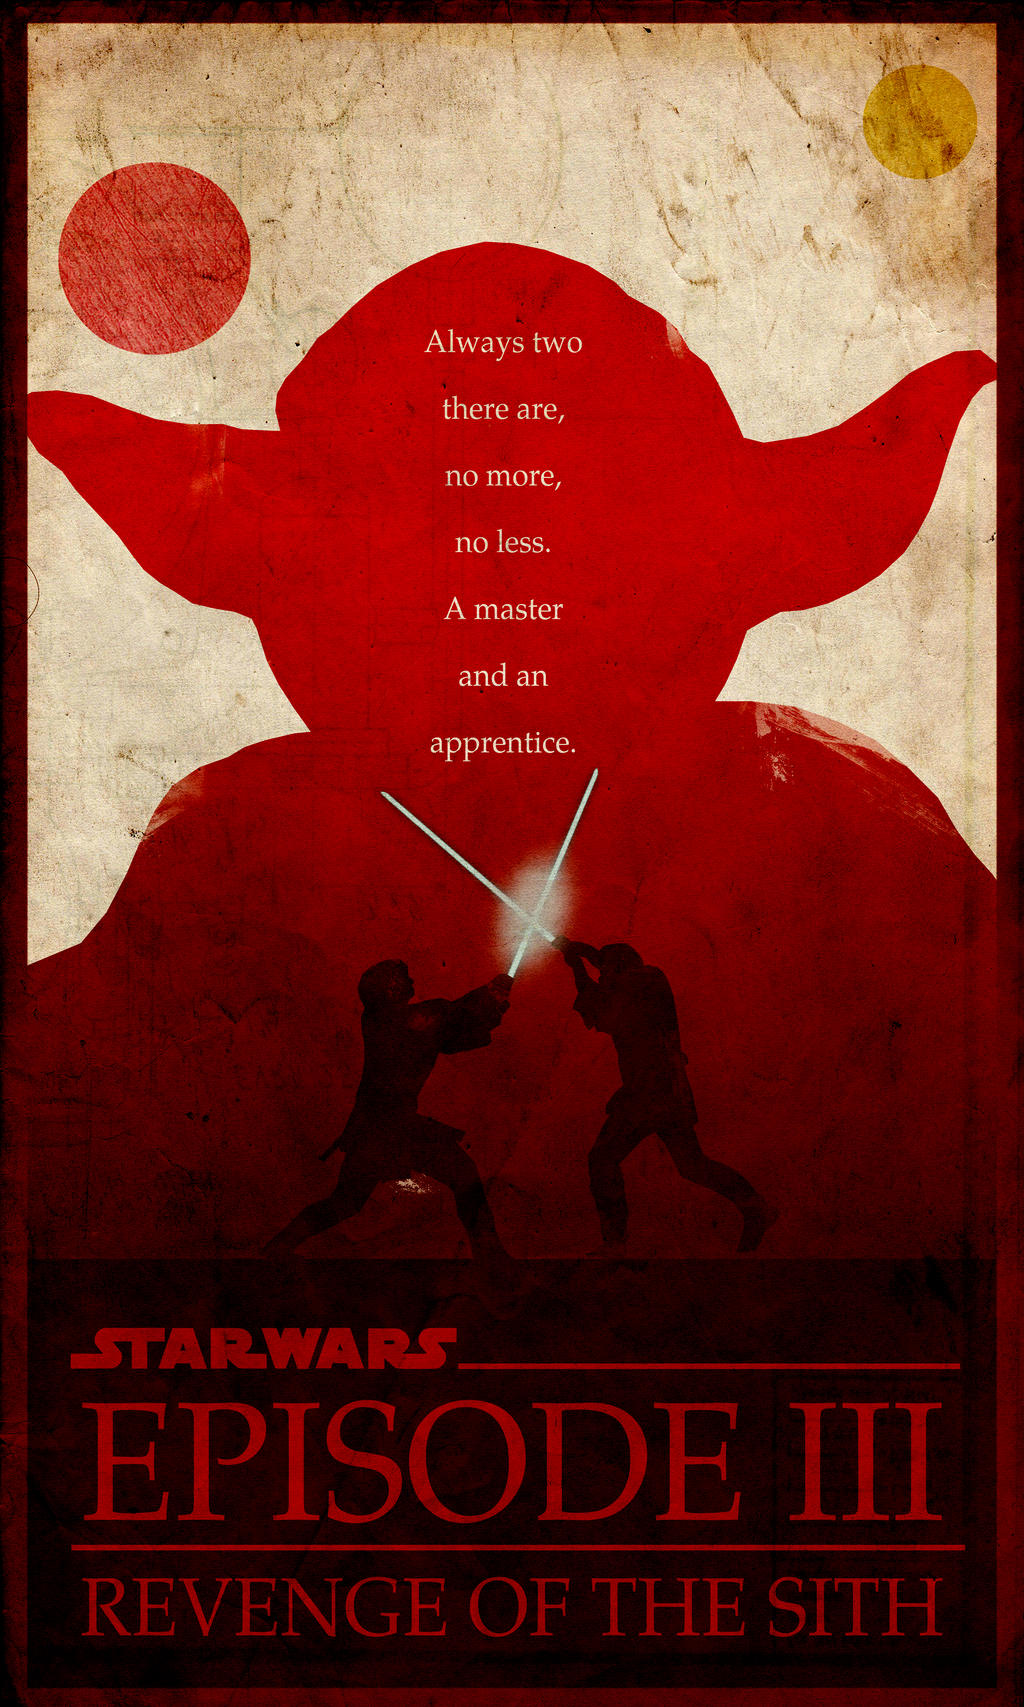 Iii Revenge Of The Sith Minimalist Poster By Chipsess0r On Deviantart